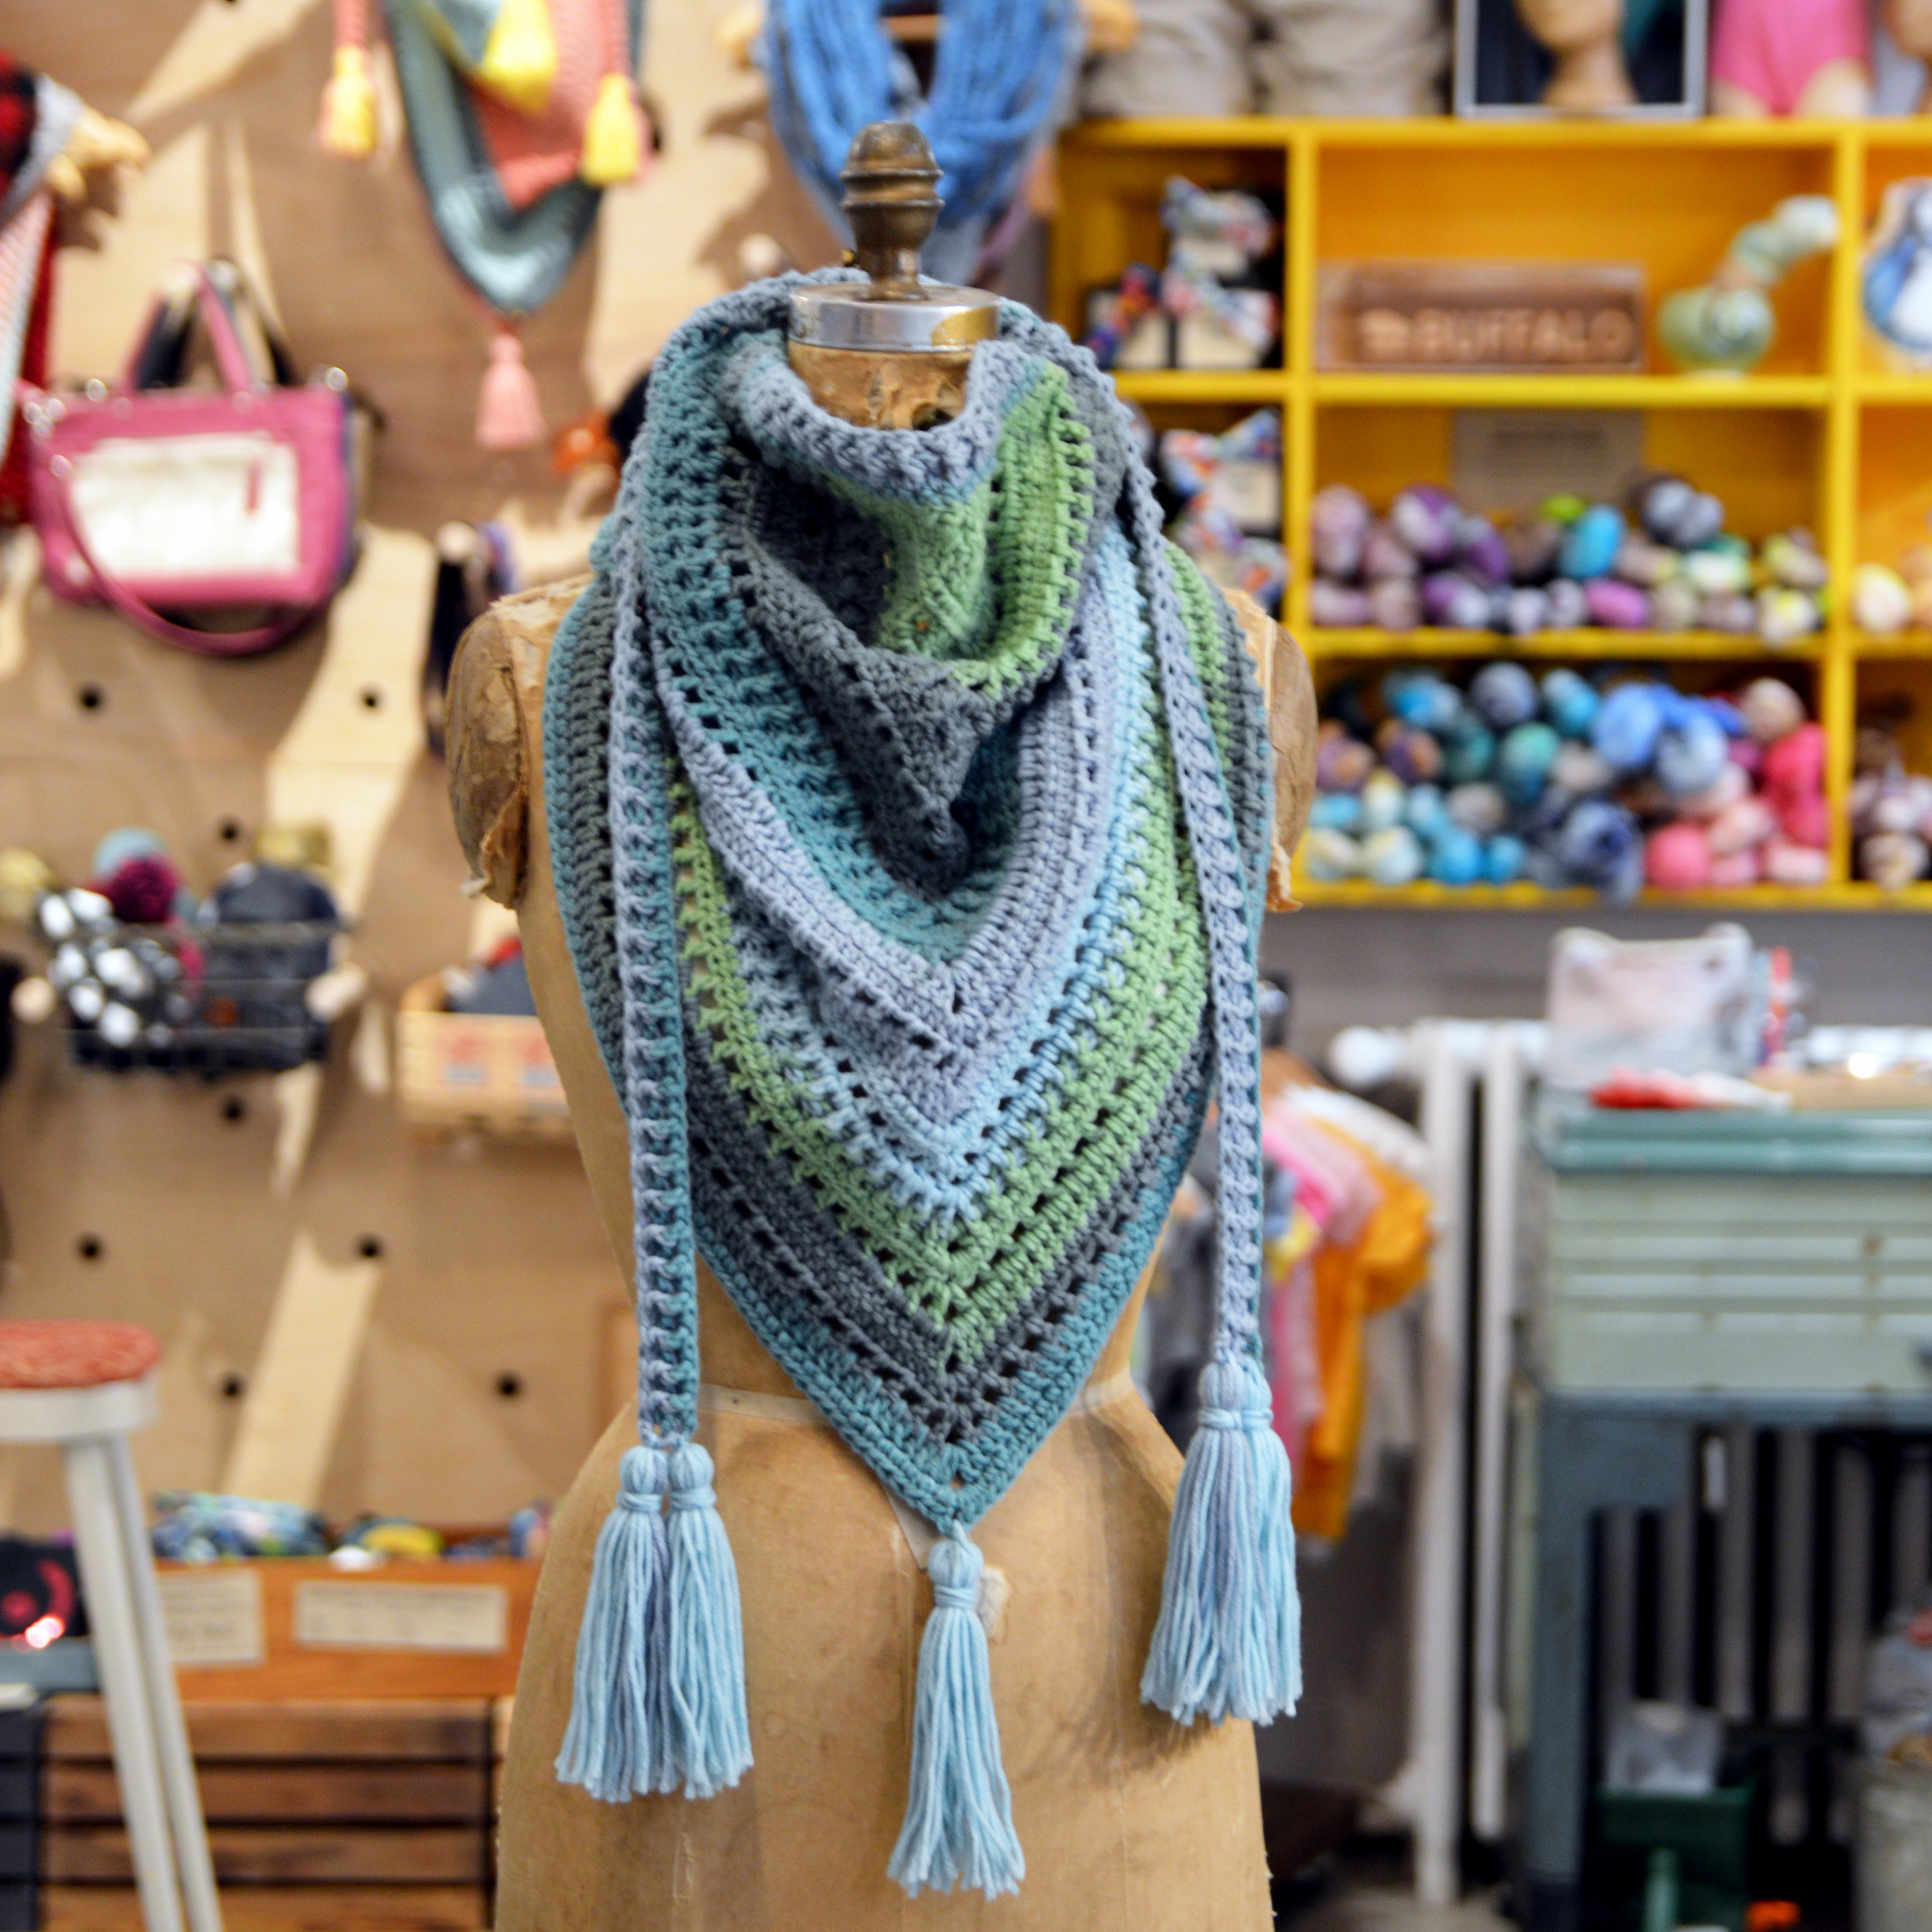 crocheted triangle scarf made in buffalo apparel